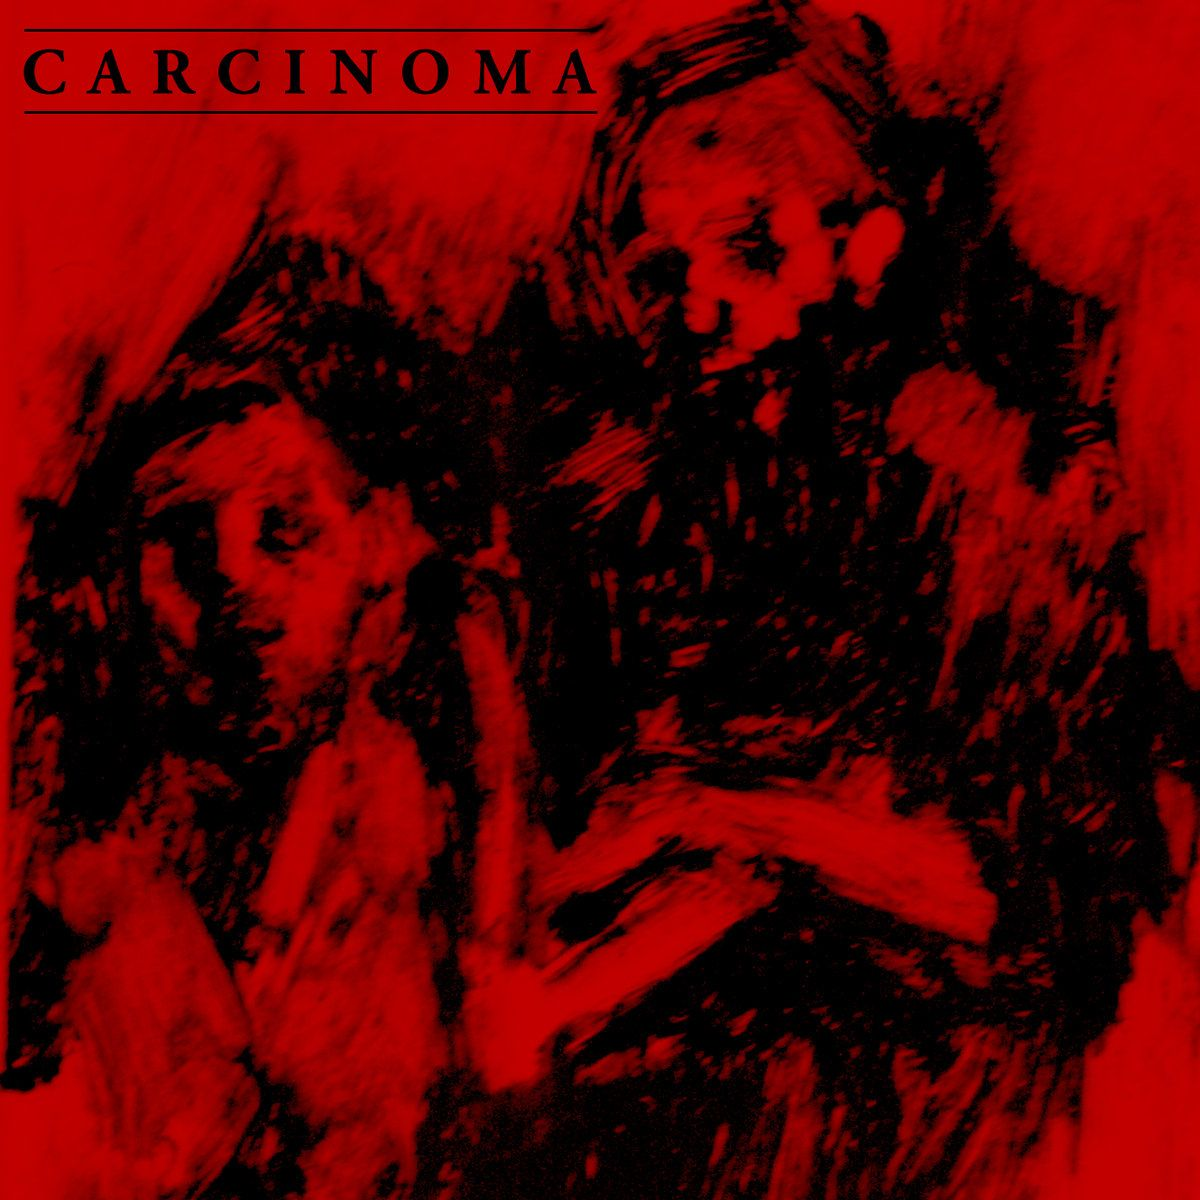 Review for Carcinoma - Carcinoma